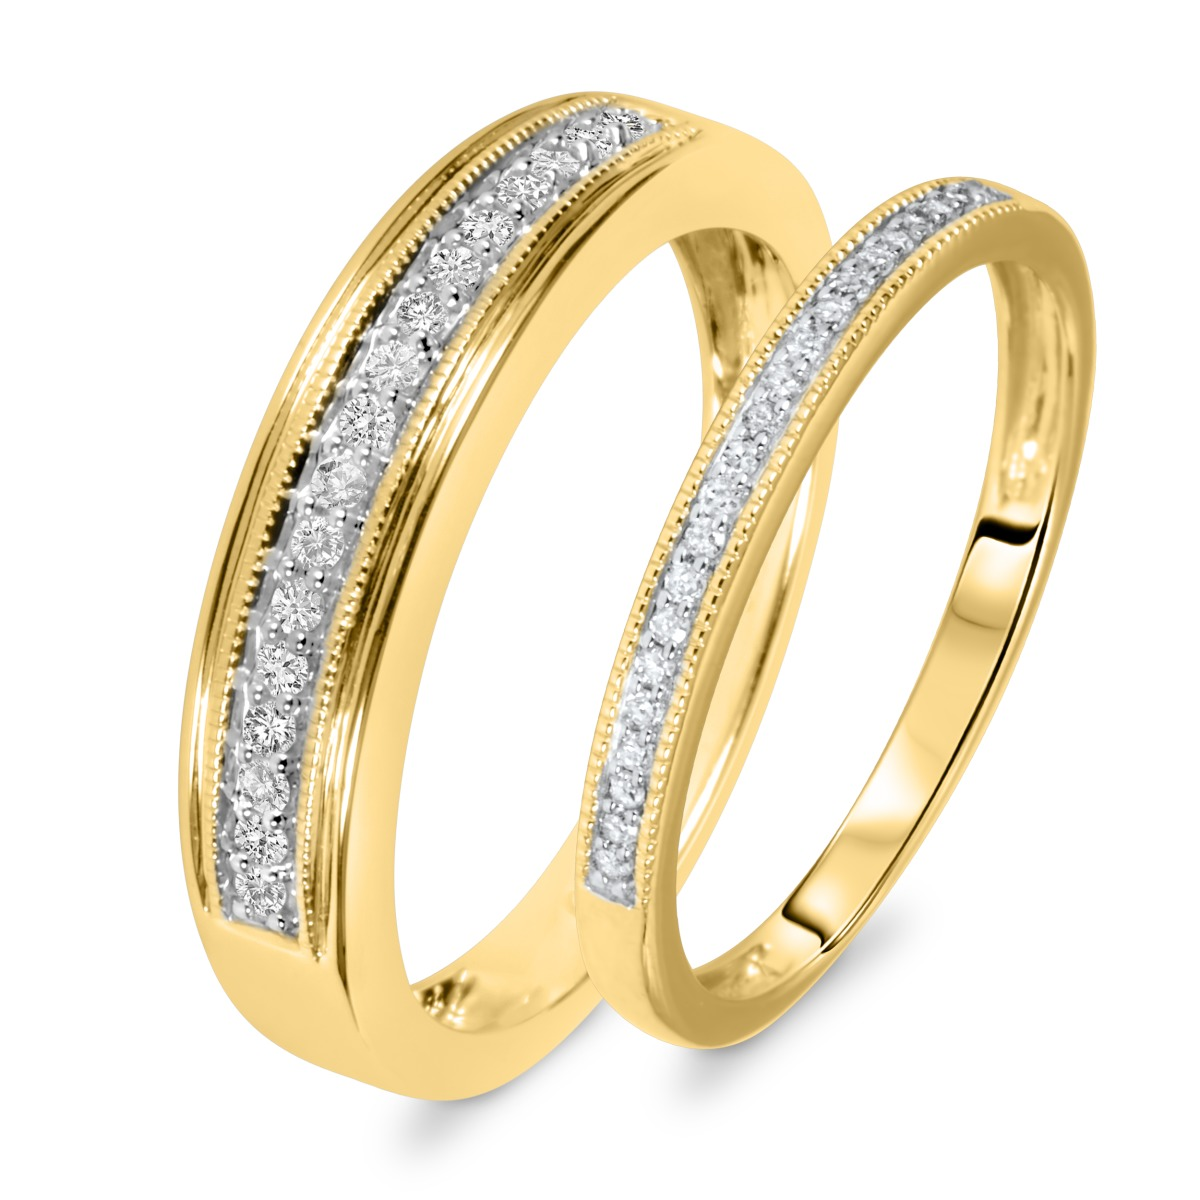 1 4 Carat TW Round Cut Diamond His And Hers Wedding Band Set 14K Yellow Gold